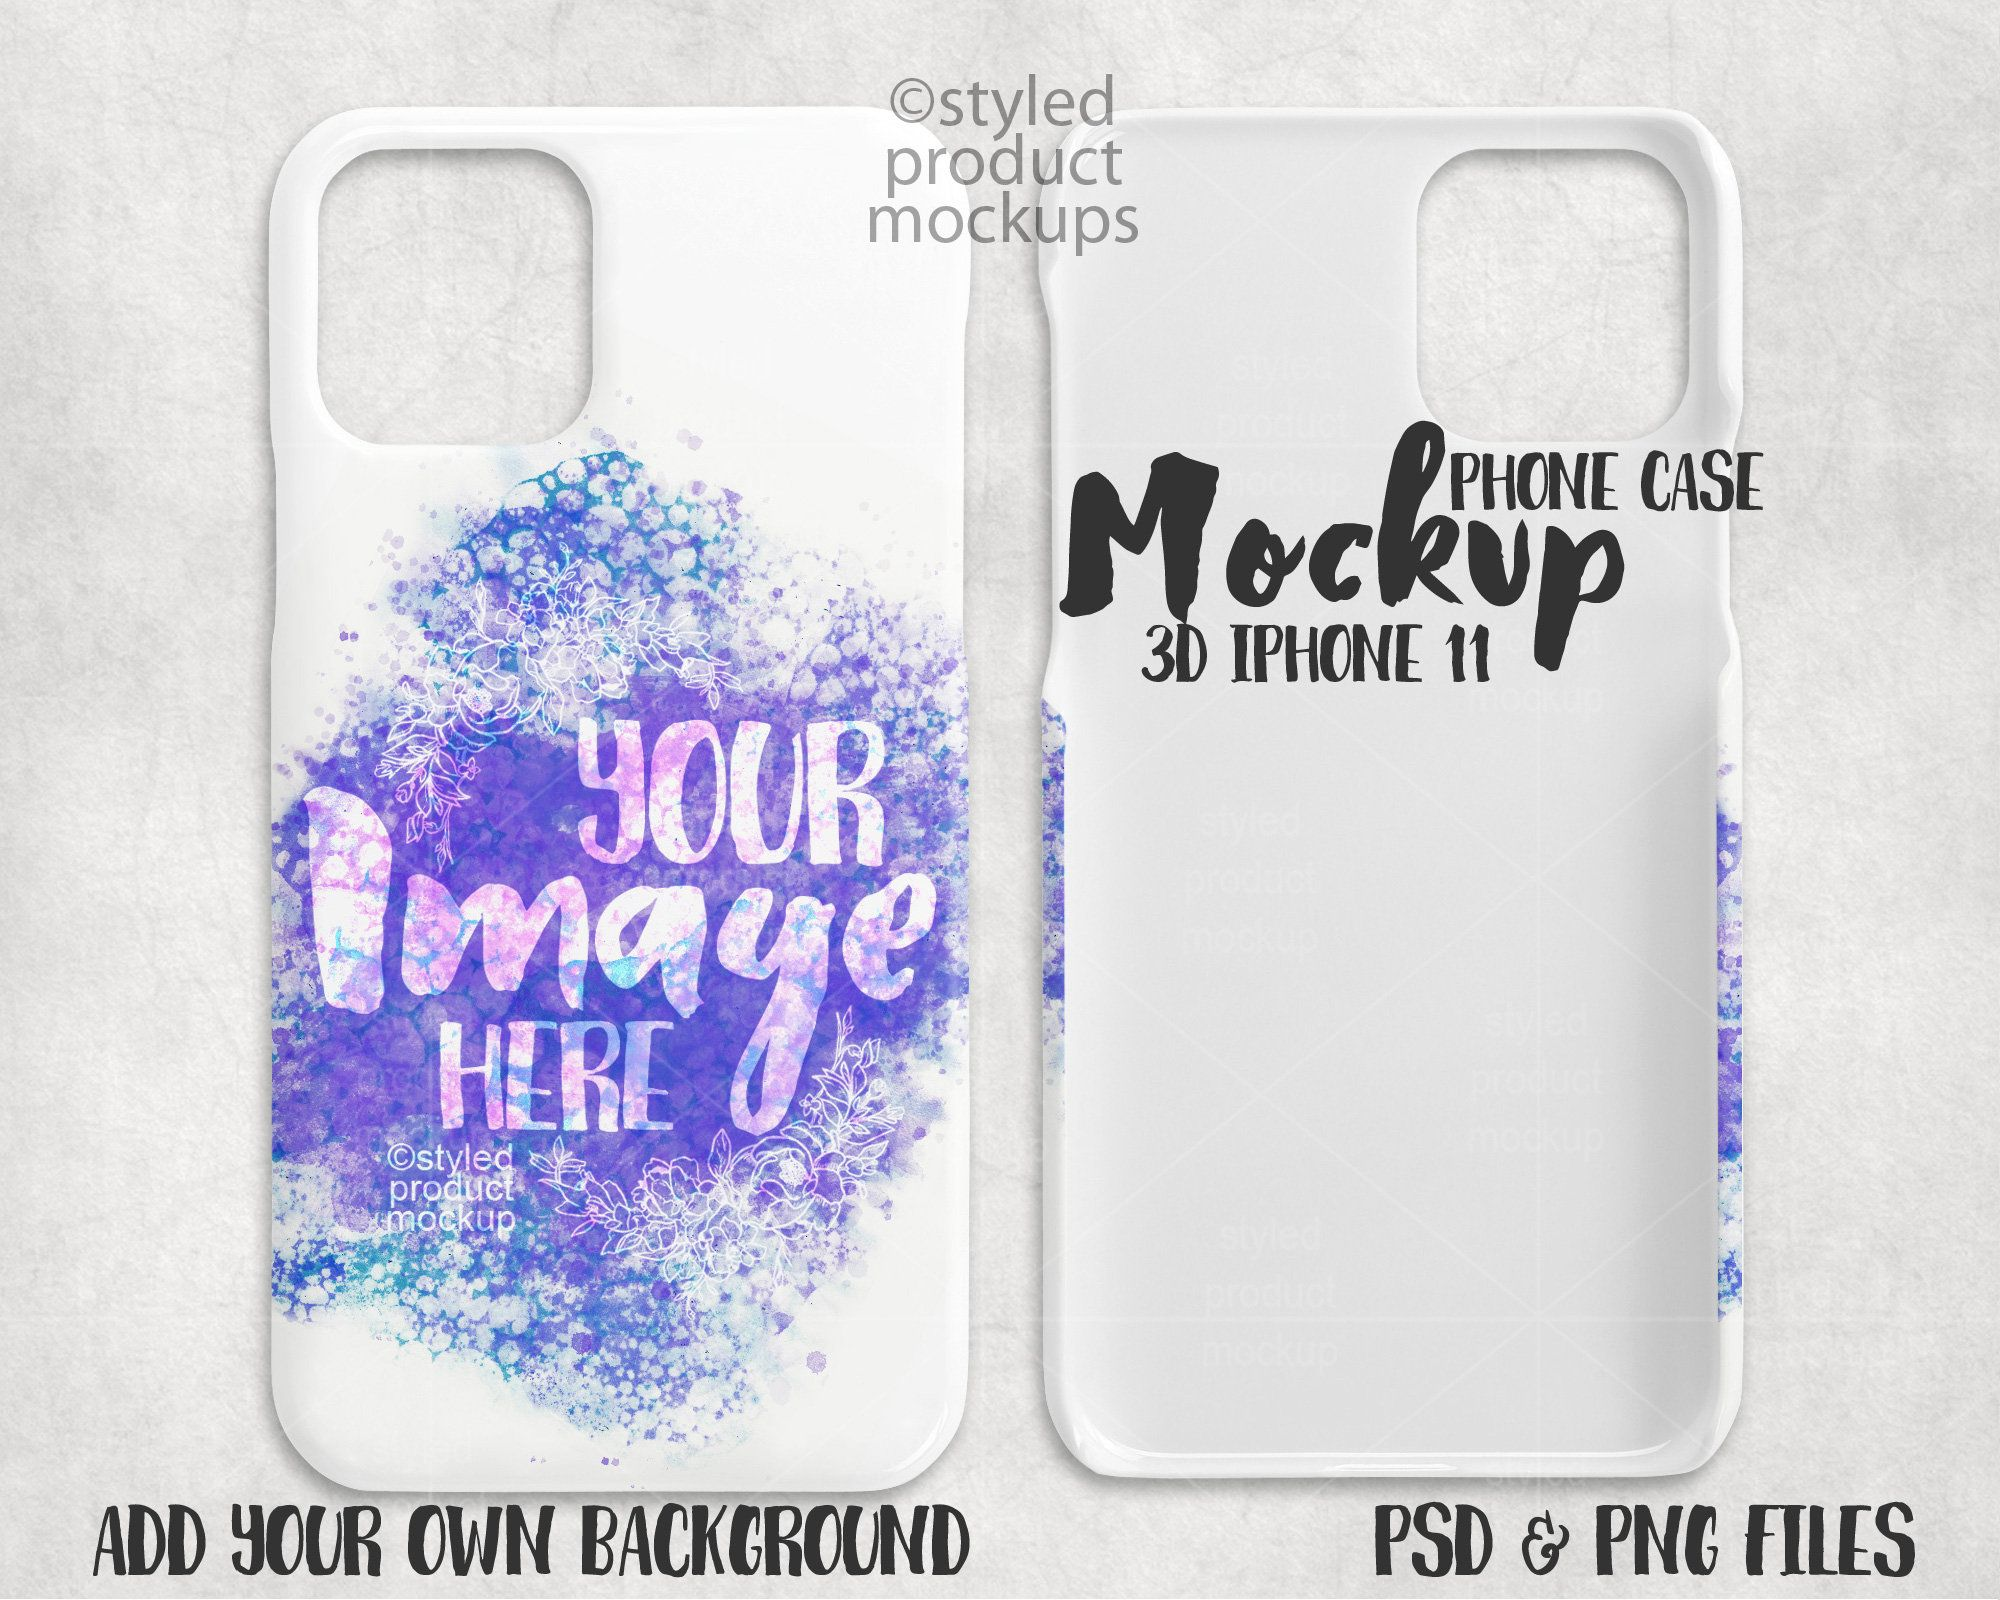 Download Dye Sublimation 3d Iphone 11 Phone Case Mockup Add Your Own Etsy Phone Cases Phone Cover Design Phone